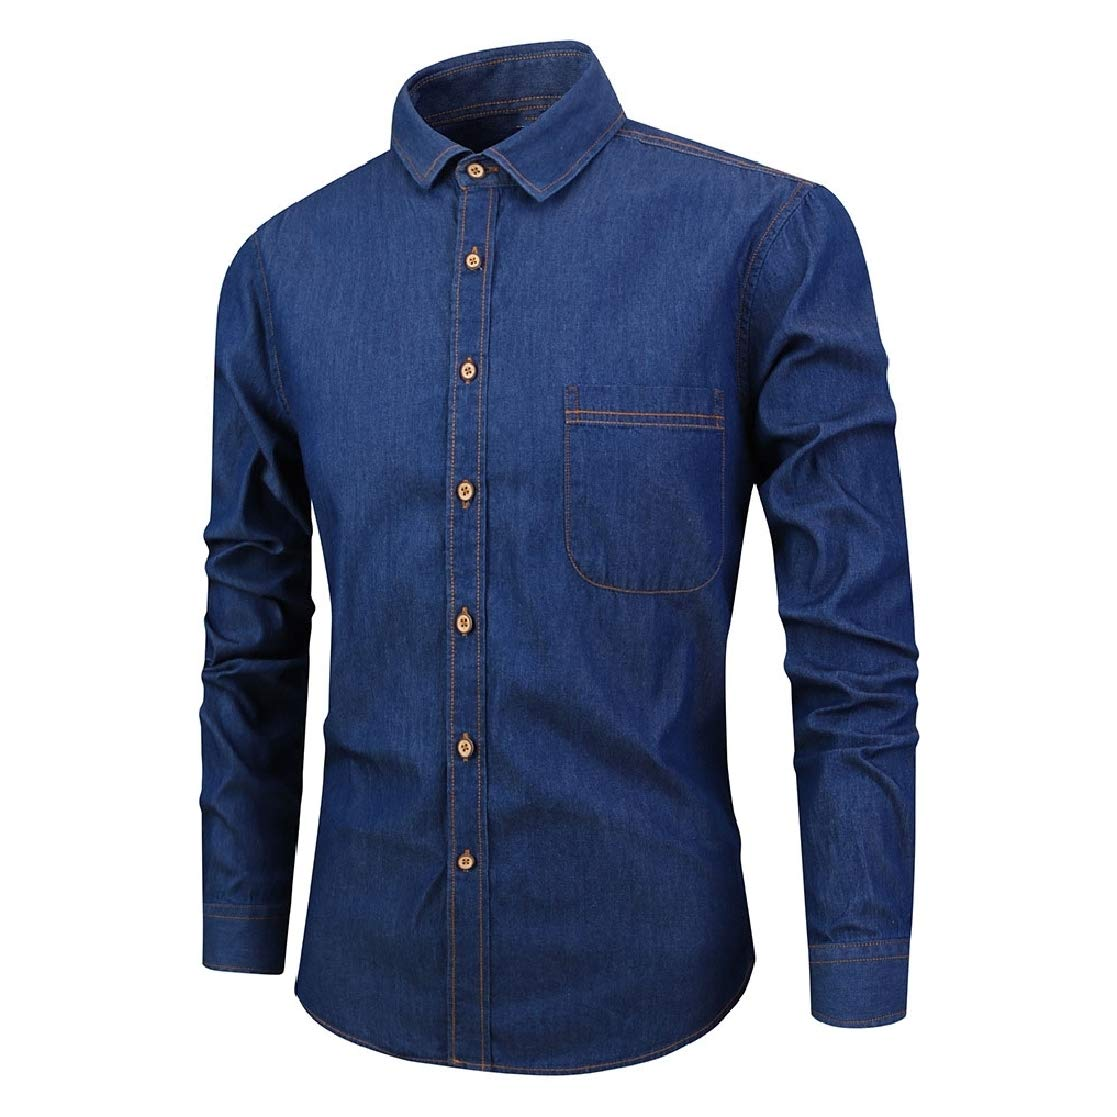 YUNY Mens Fitted Cardigan Square Collor Long Sleeve Pure Color Denim Shirt Dark Blue 2XL